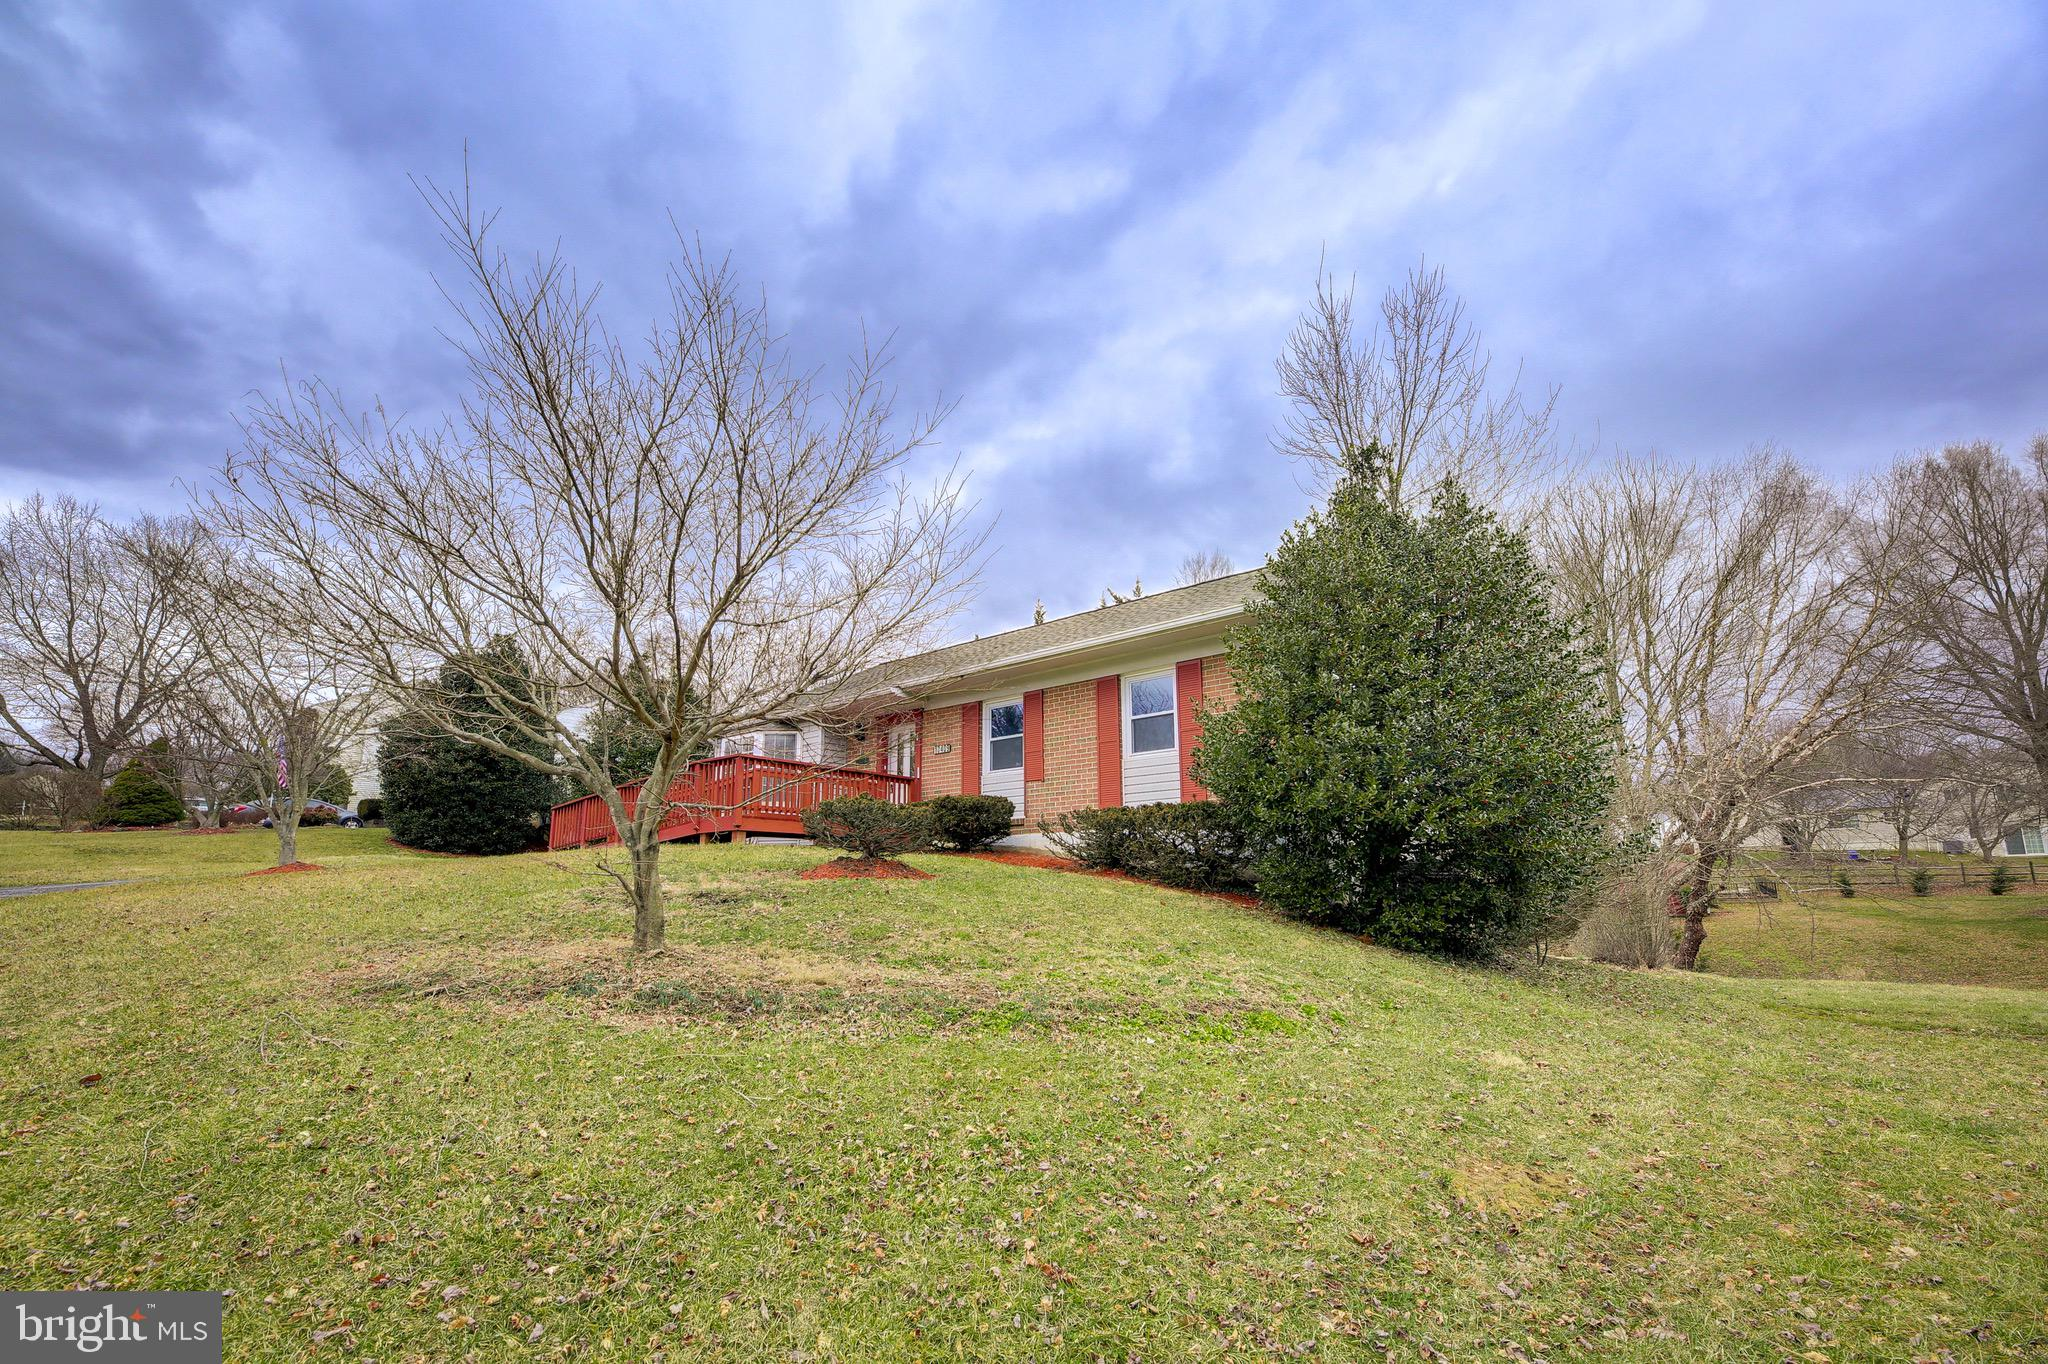 10409 SWEEPSTAKES ROAD, Damascus, 20872, MLS # MDMC621728 | RE/MAX of  Reading